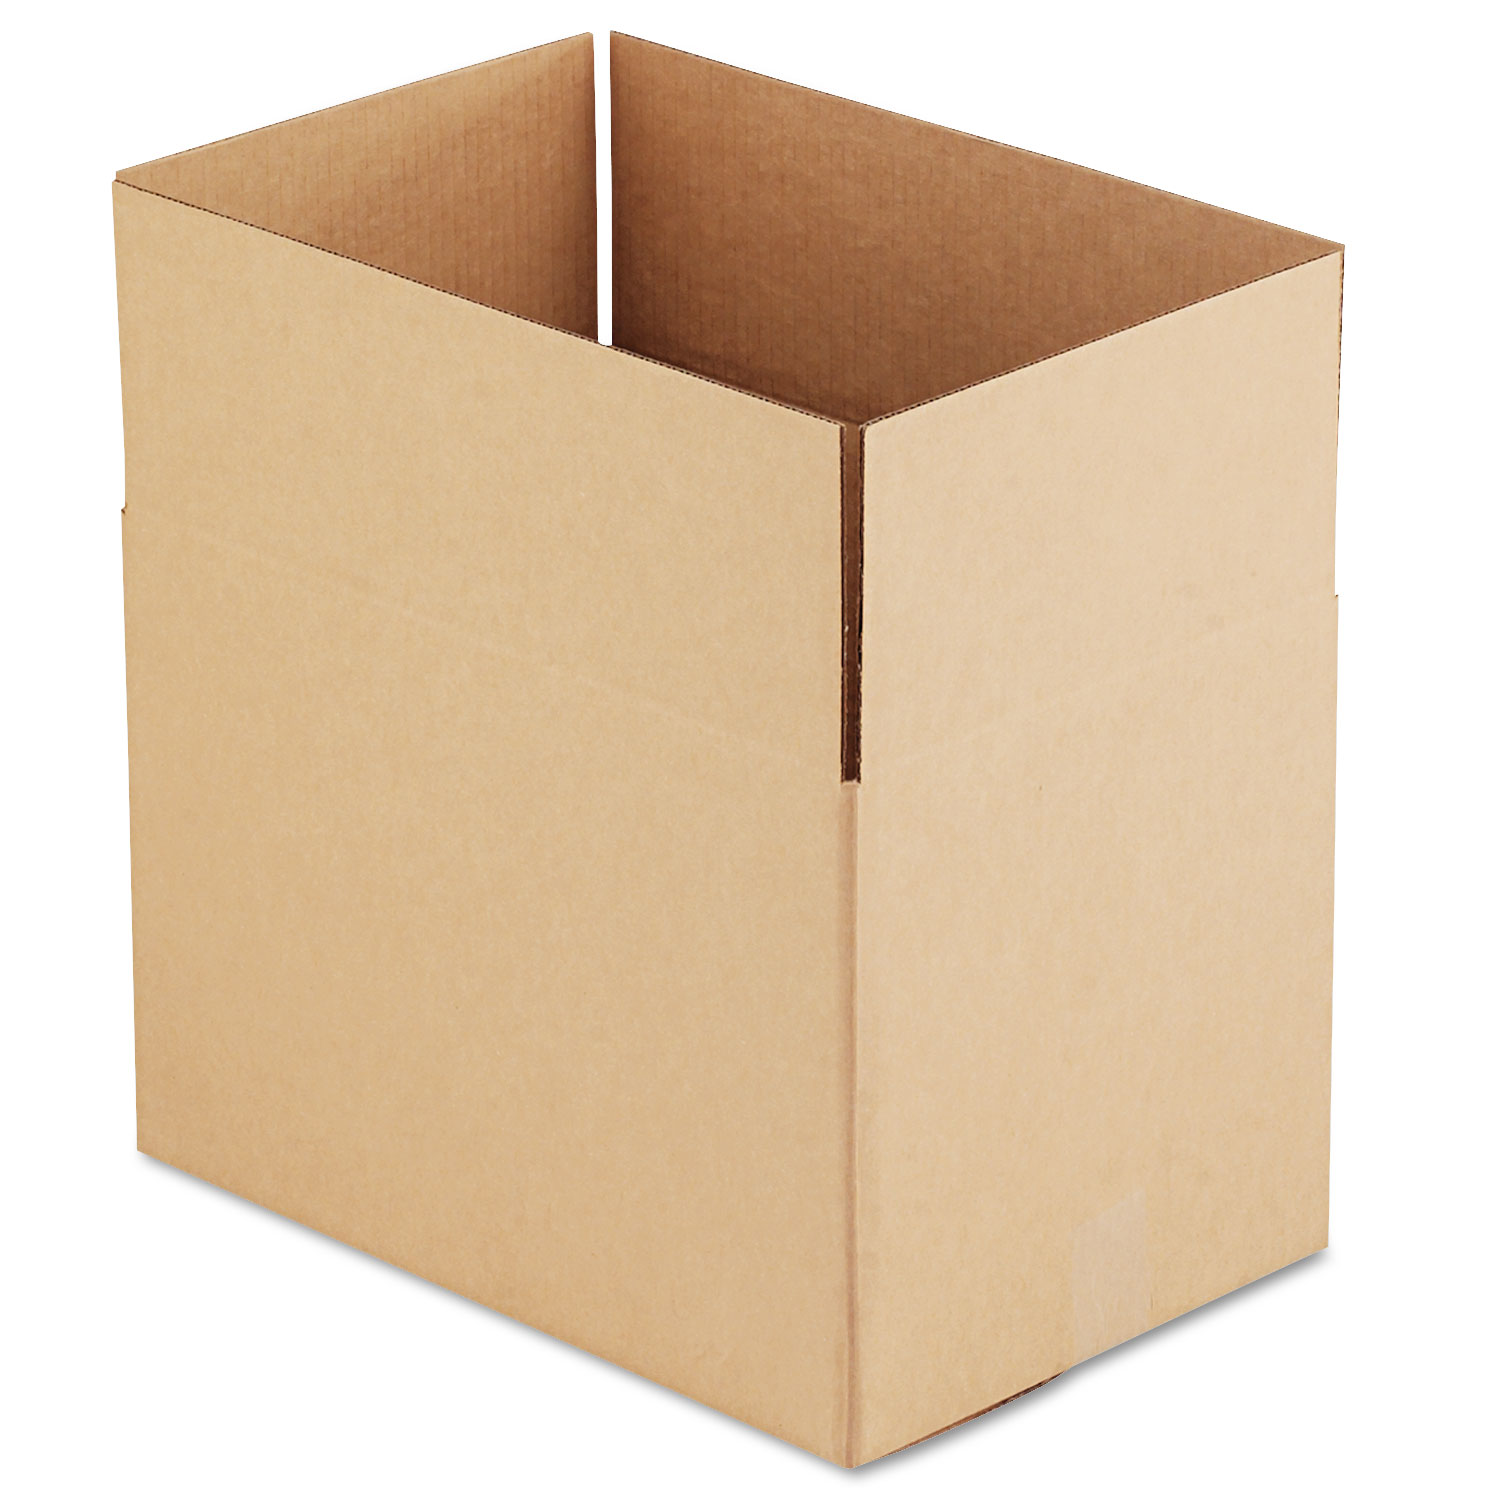 25-18 x 10 x 6 Corrugated Shipping Boxes Packing Storage Cartons Cardboard Box